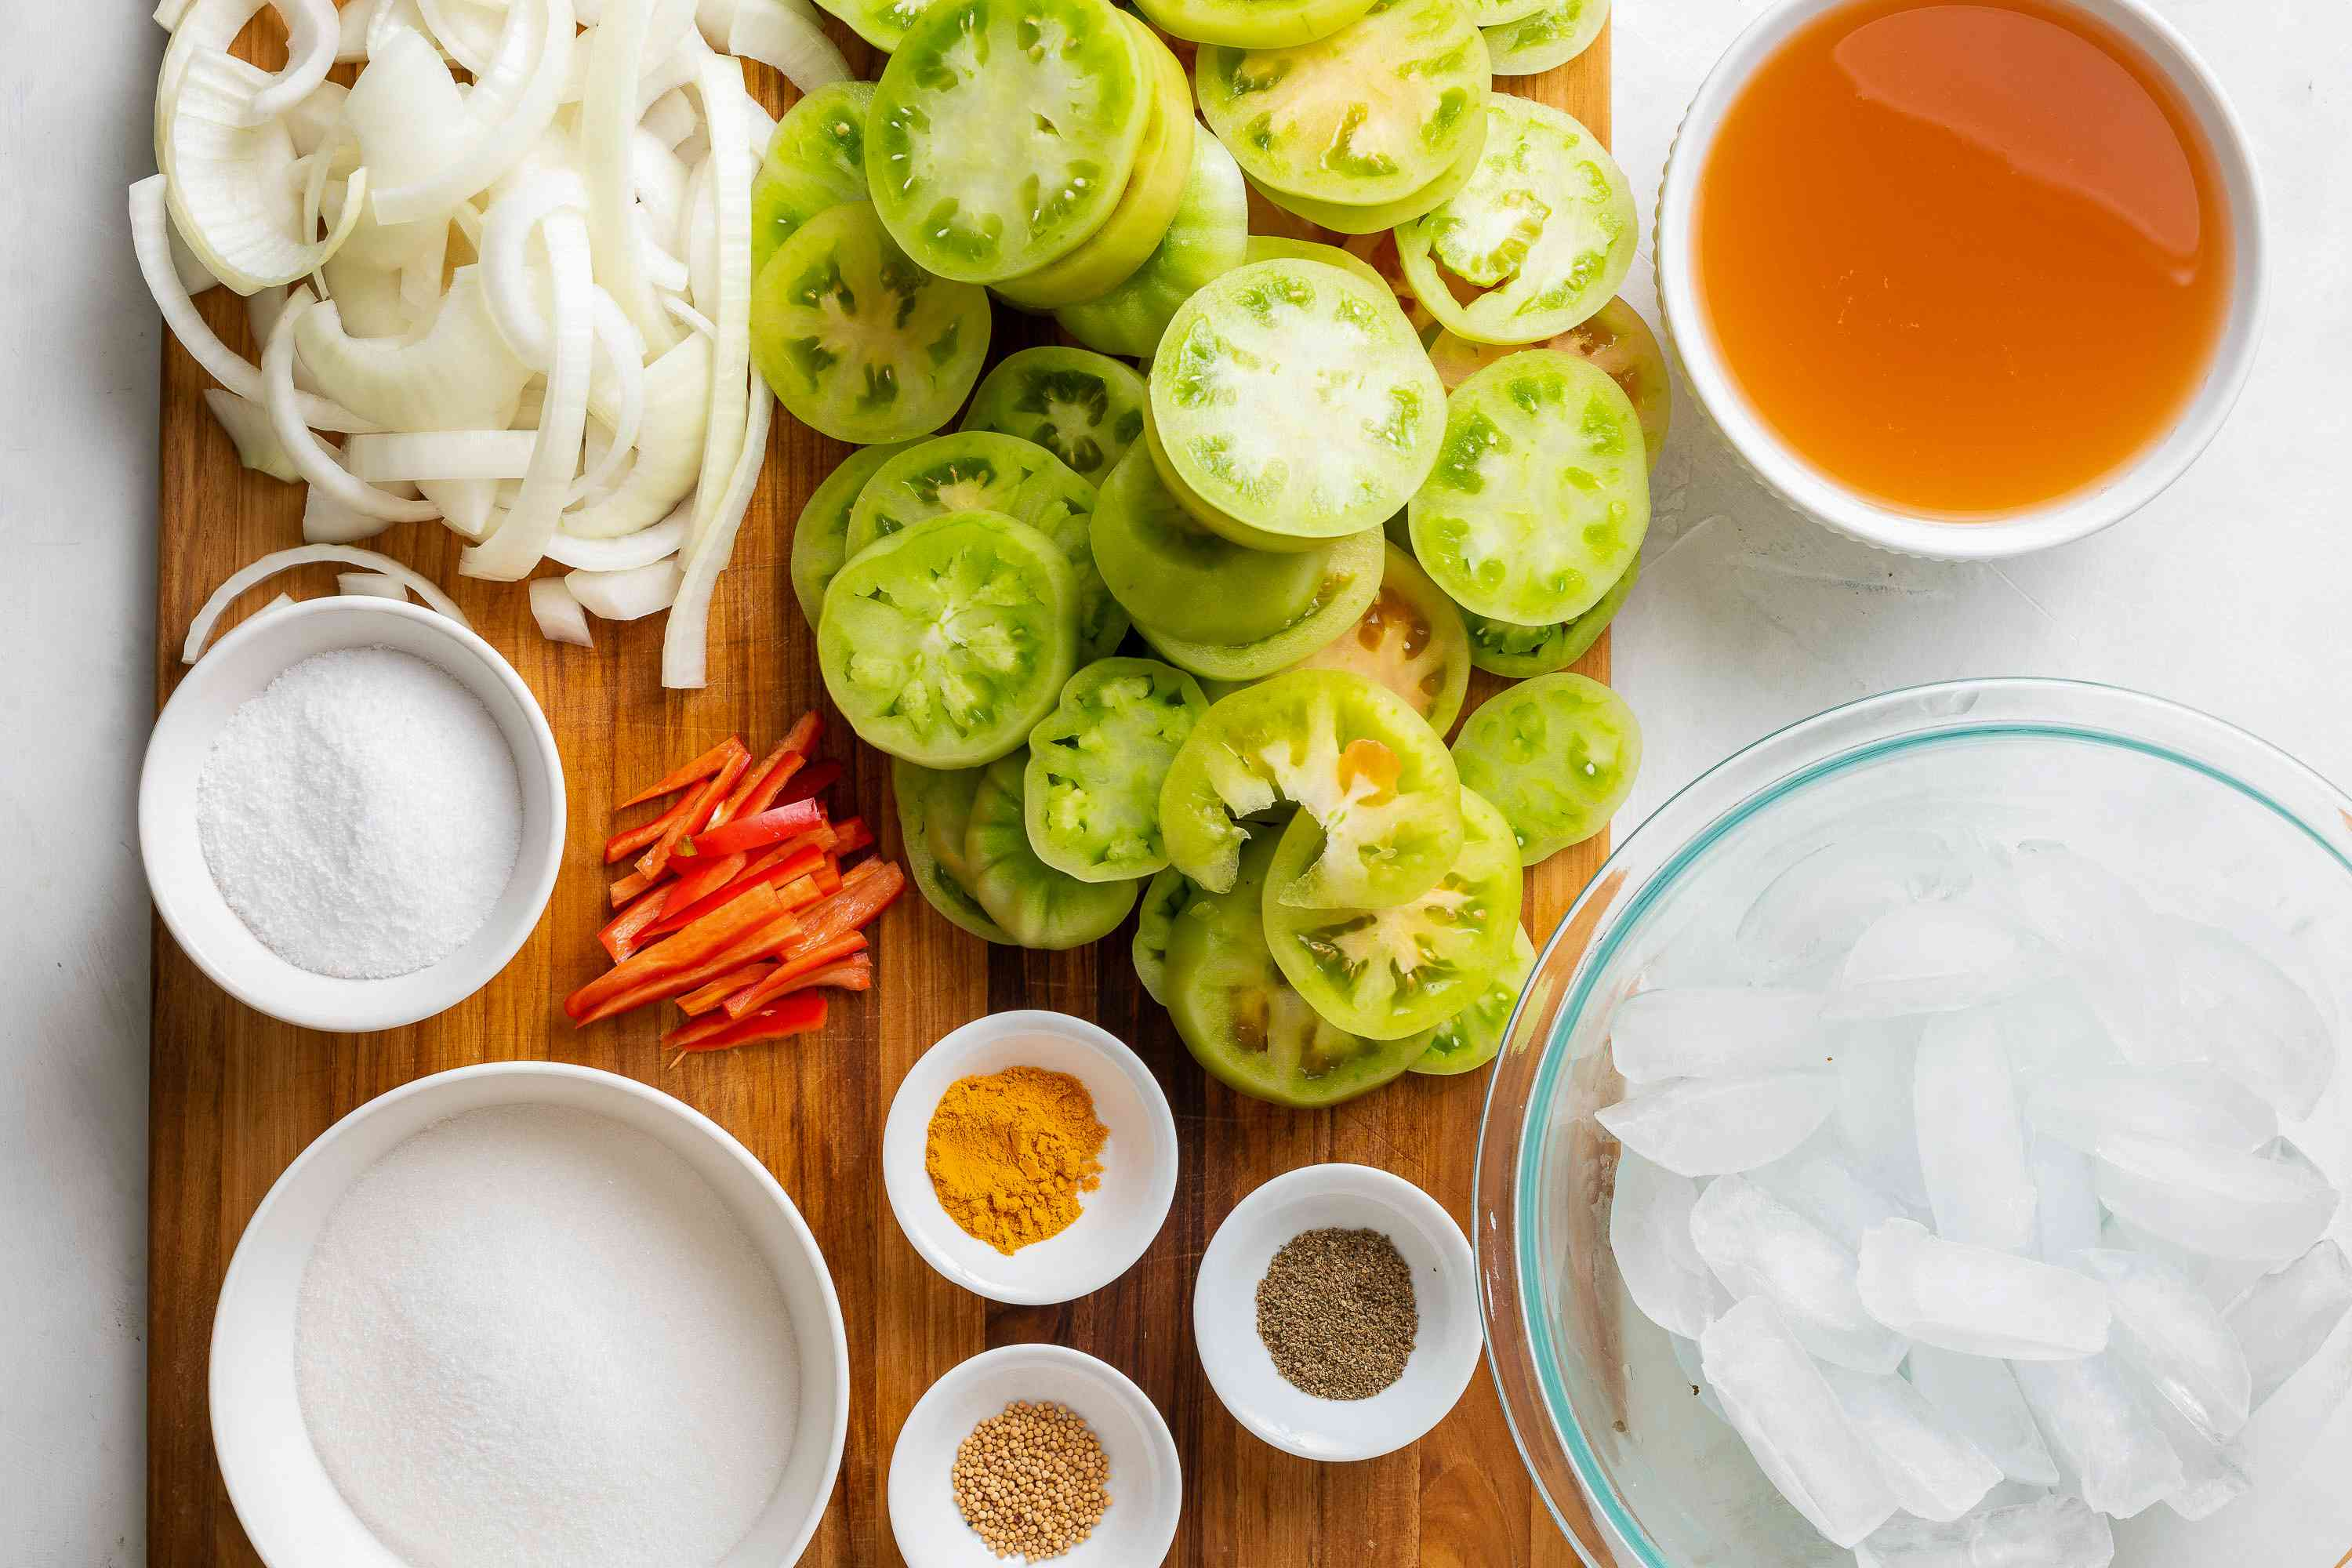 Pickled Green Tomatoes ingredients